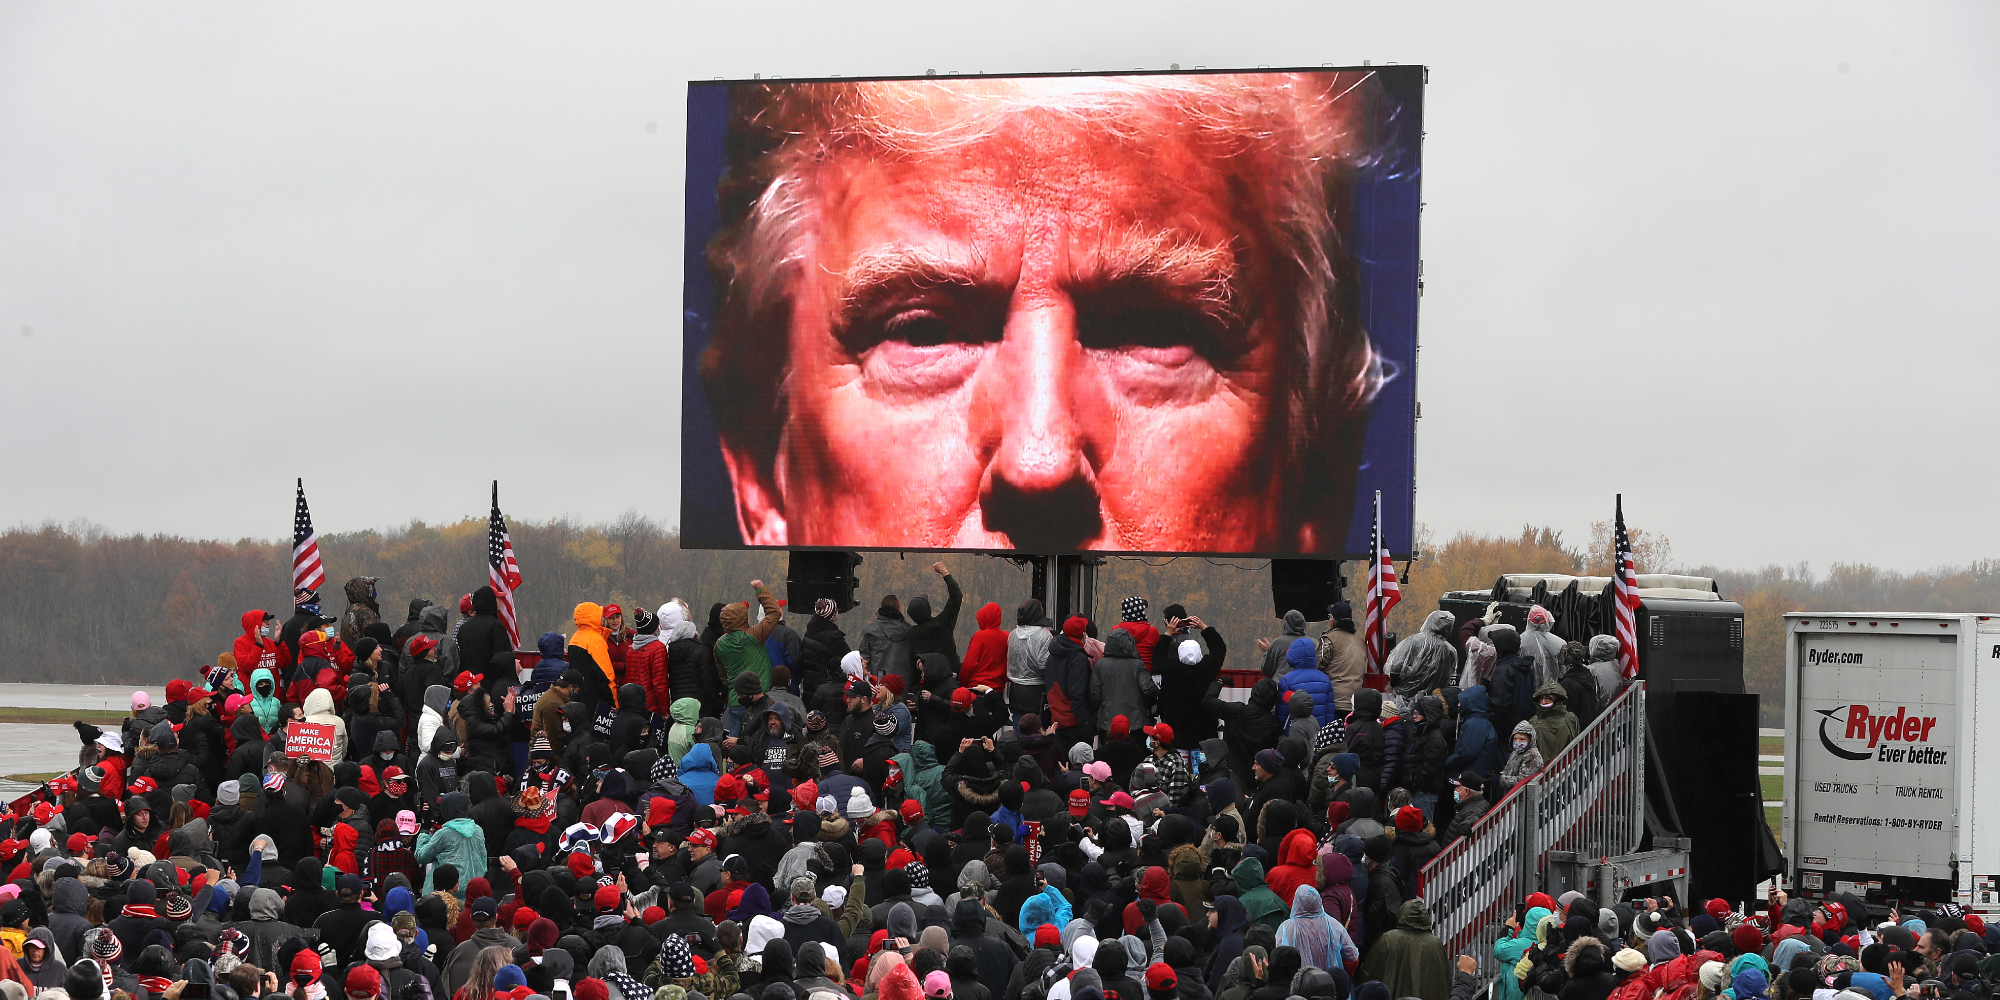 People left horrified over 'dystopian' Trump campaign video shown on giant screens at rally